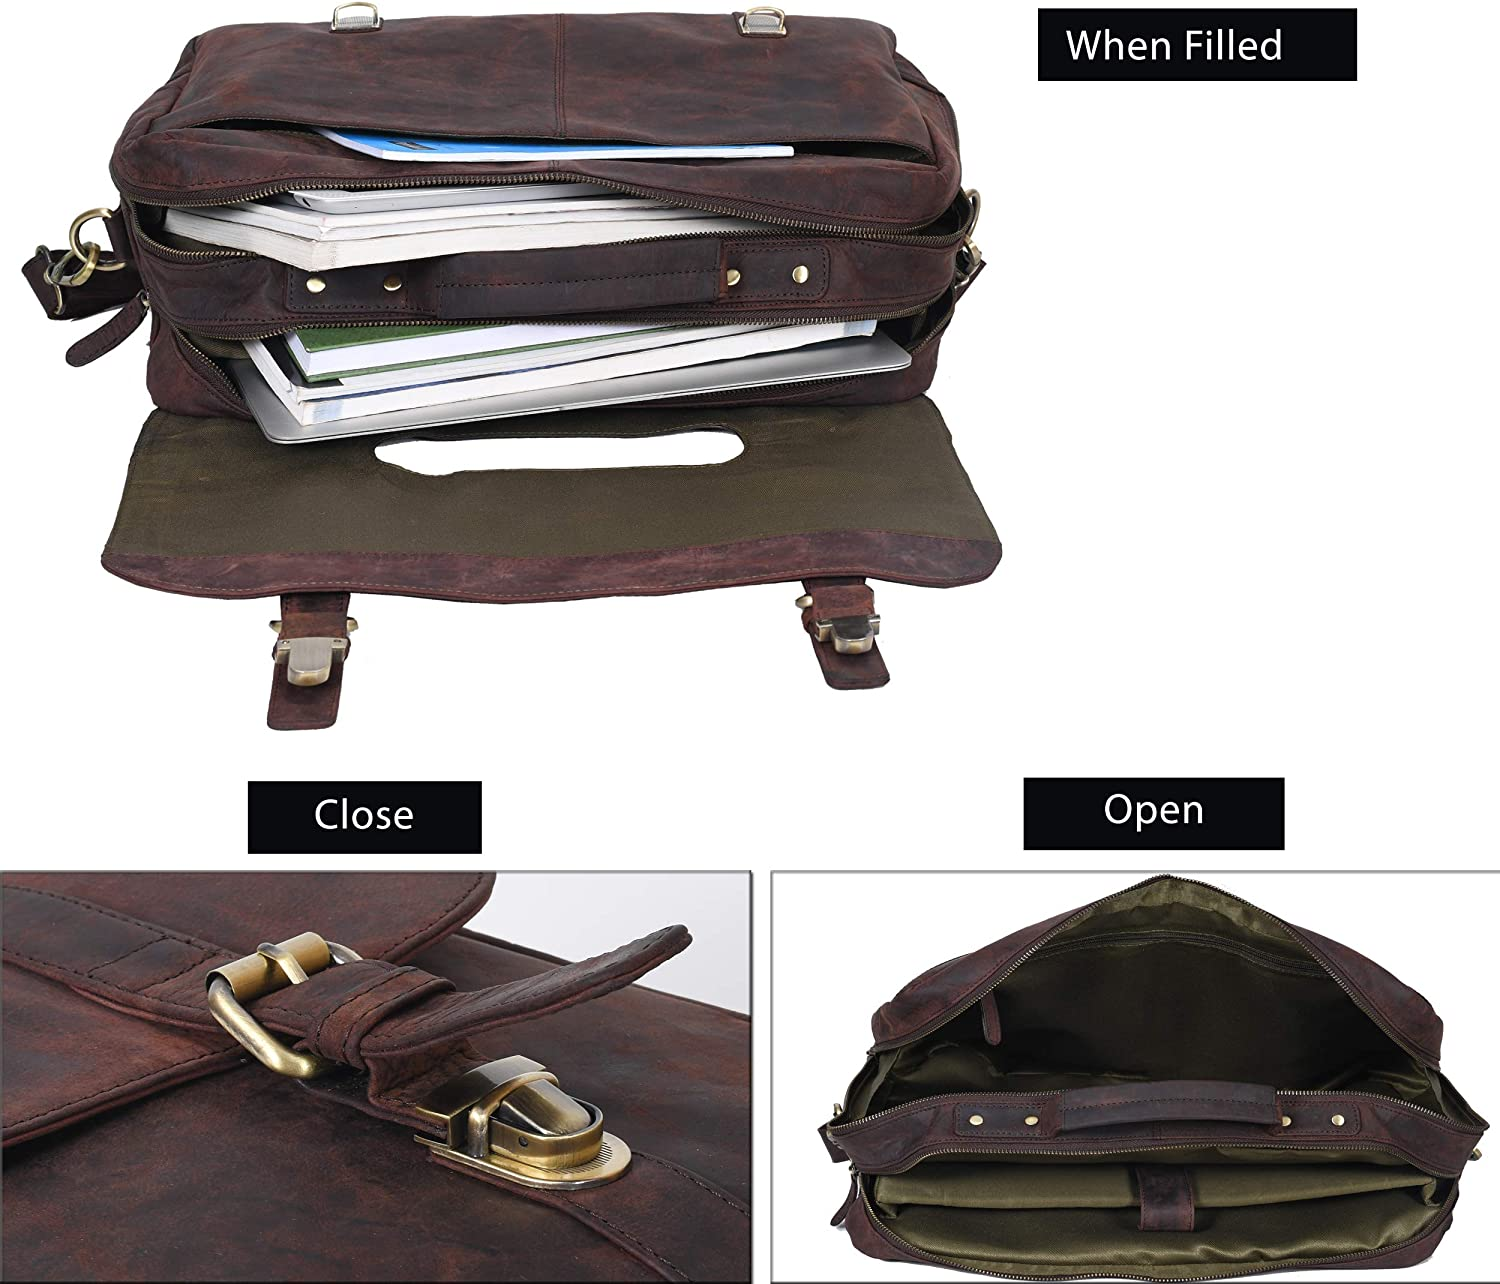 Leather Messenger Bag for Men-15 Inch Office Briefcase RFID Laptop Bag Leather Multi Pocket Satchel Bag